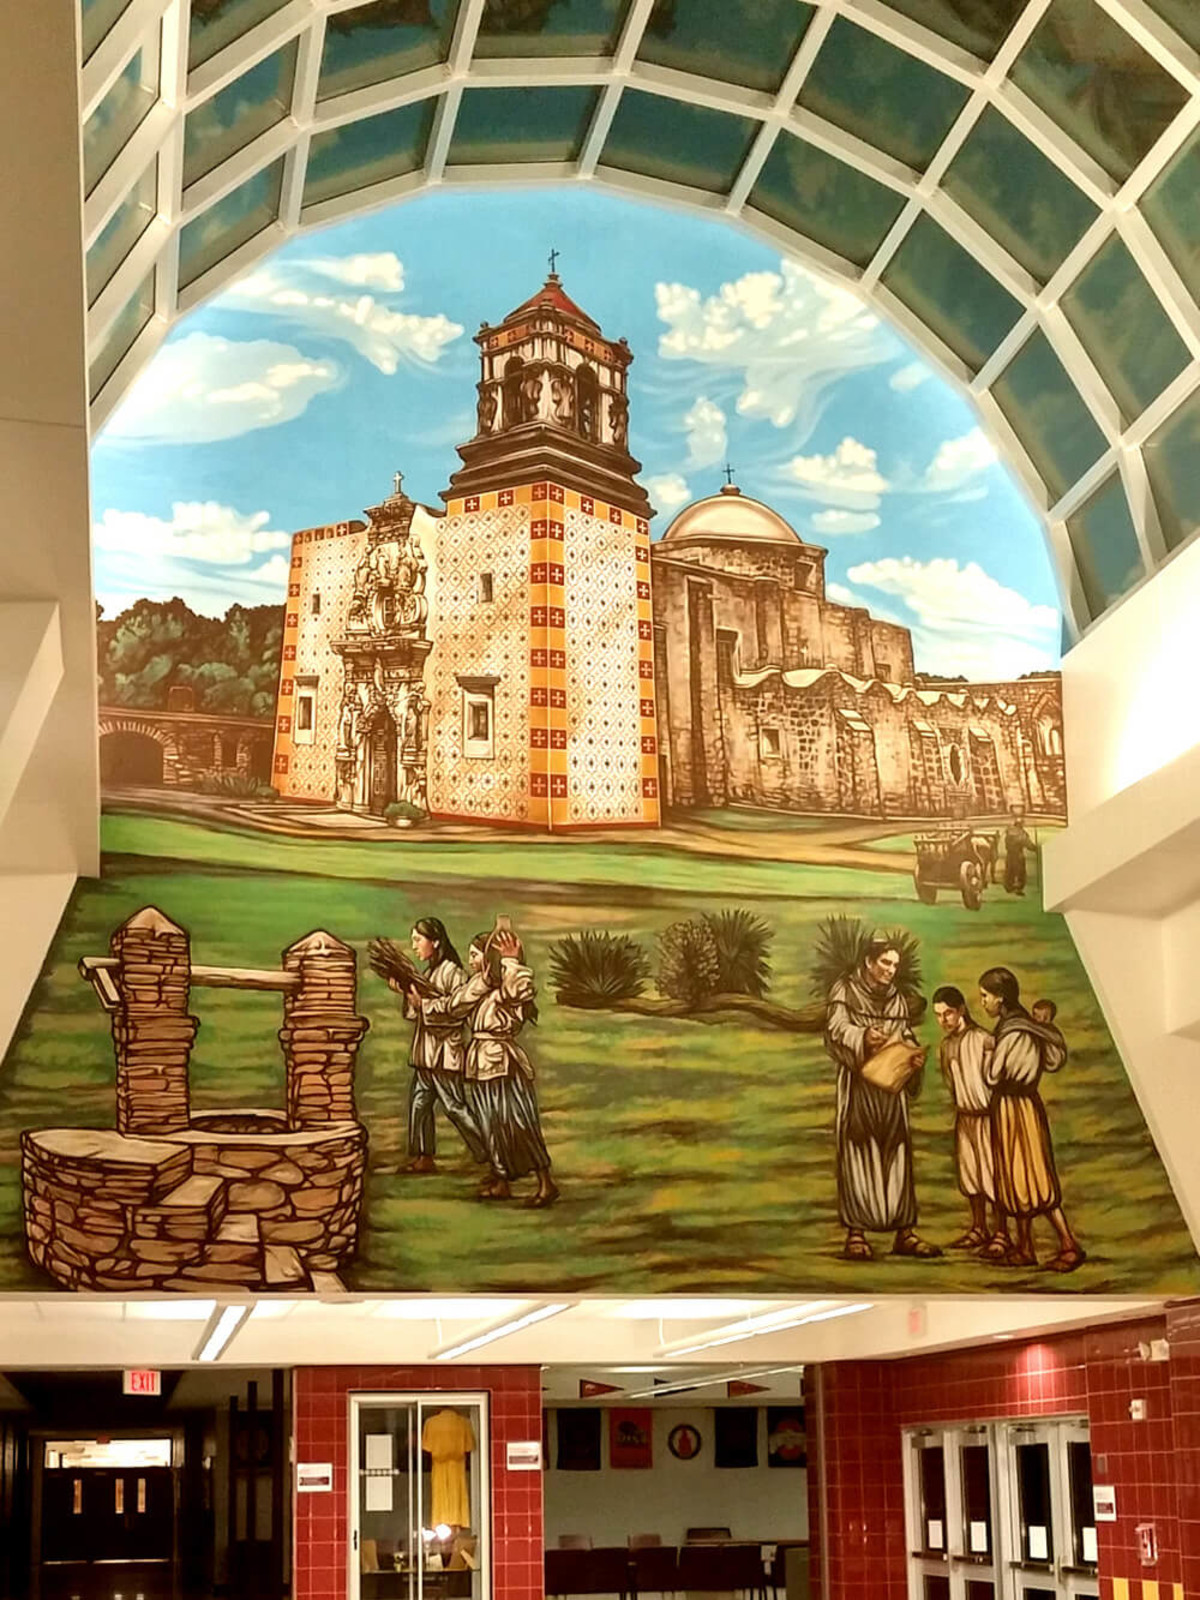 Queen of the Spanish Missions by David Blancas at Harlendale High School